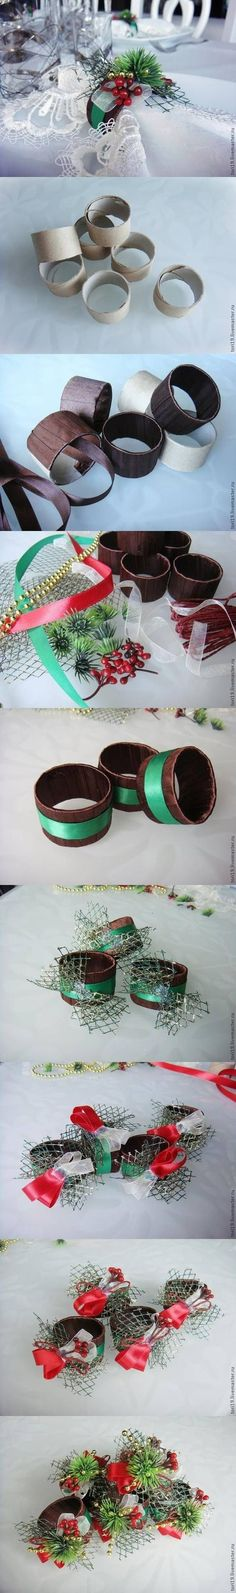 How to make toilet paper napkin rings diy christmas diy crafts do it yourself diy projects napkin rings